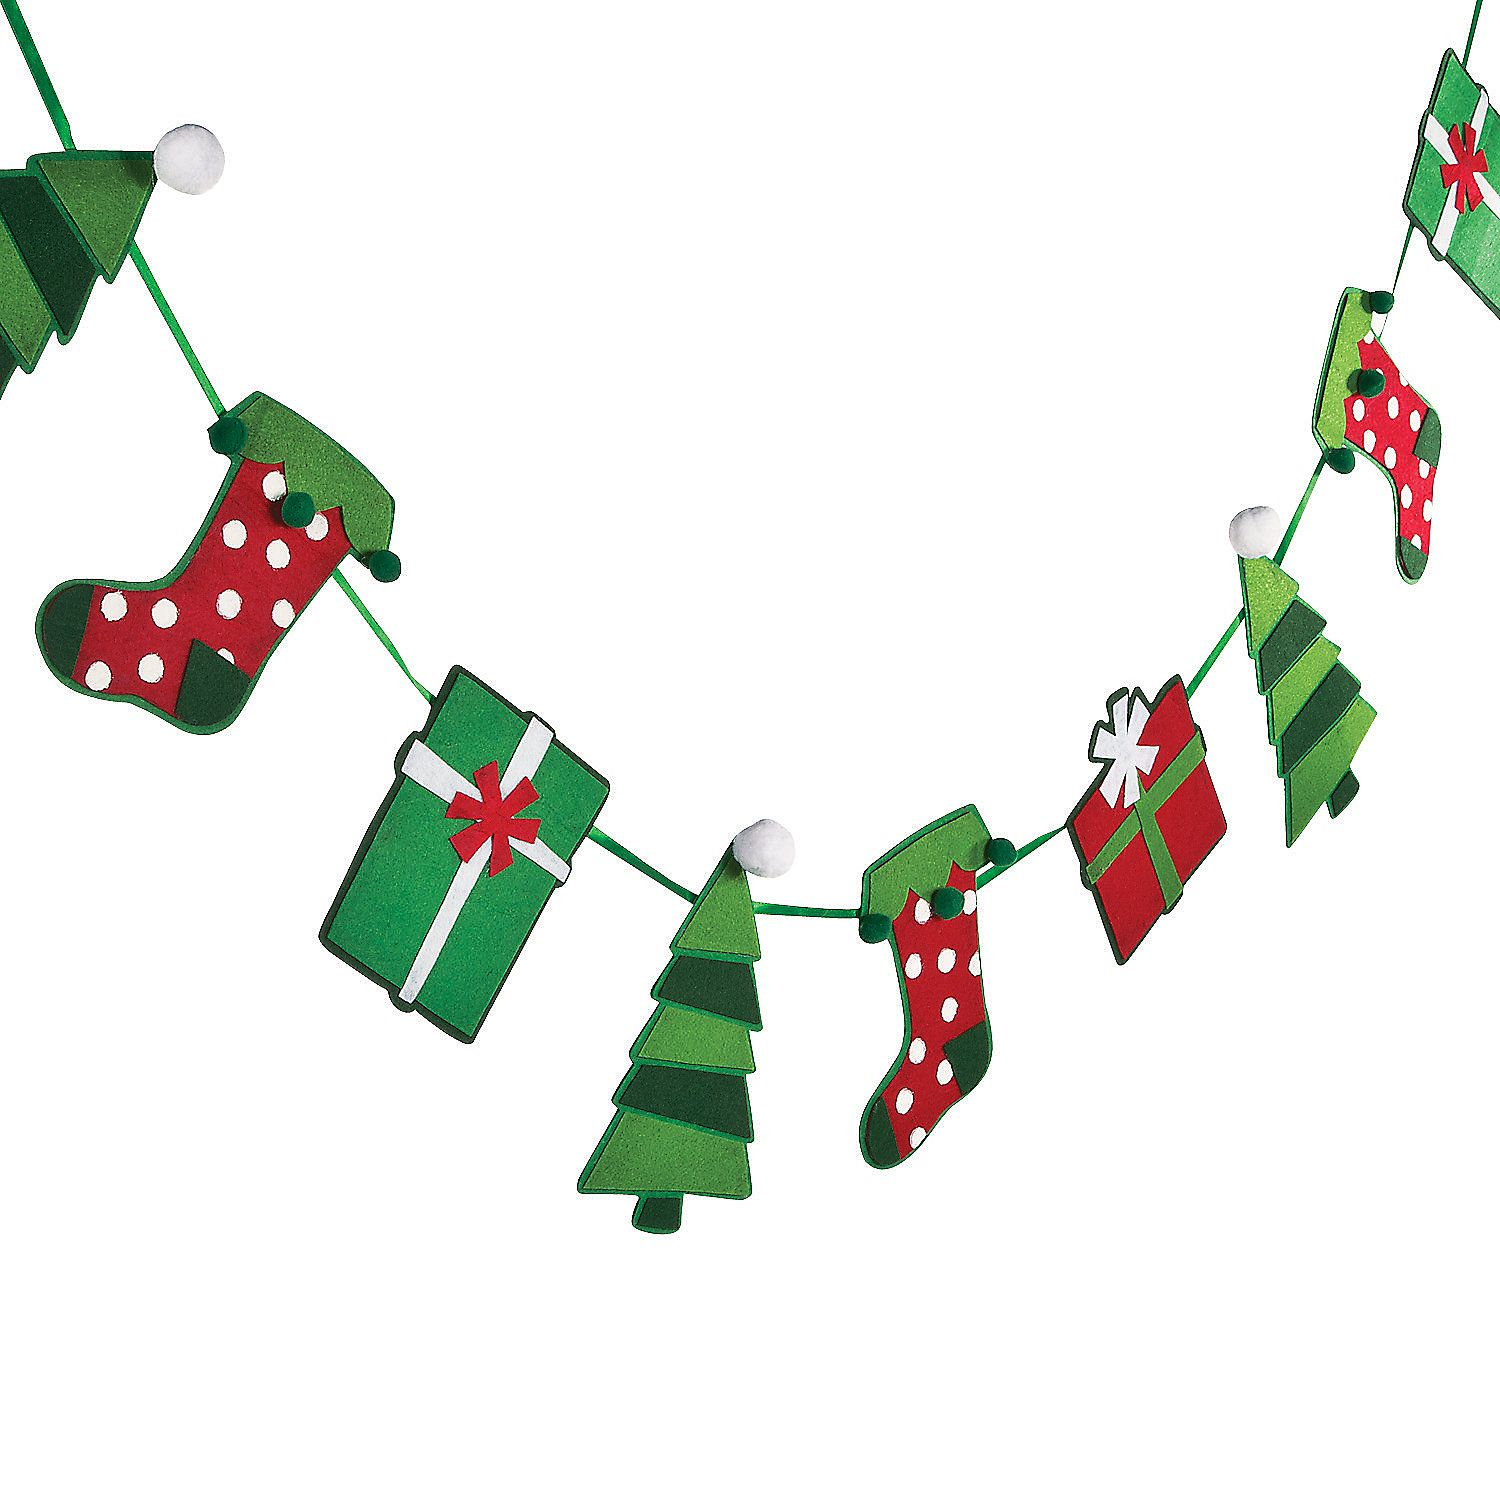 Christmas Shapes Garland Orientaltrading Com With Images Grinch Christmas Decorations Christmas Party Themes Handmade Christmas